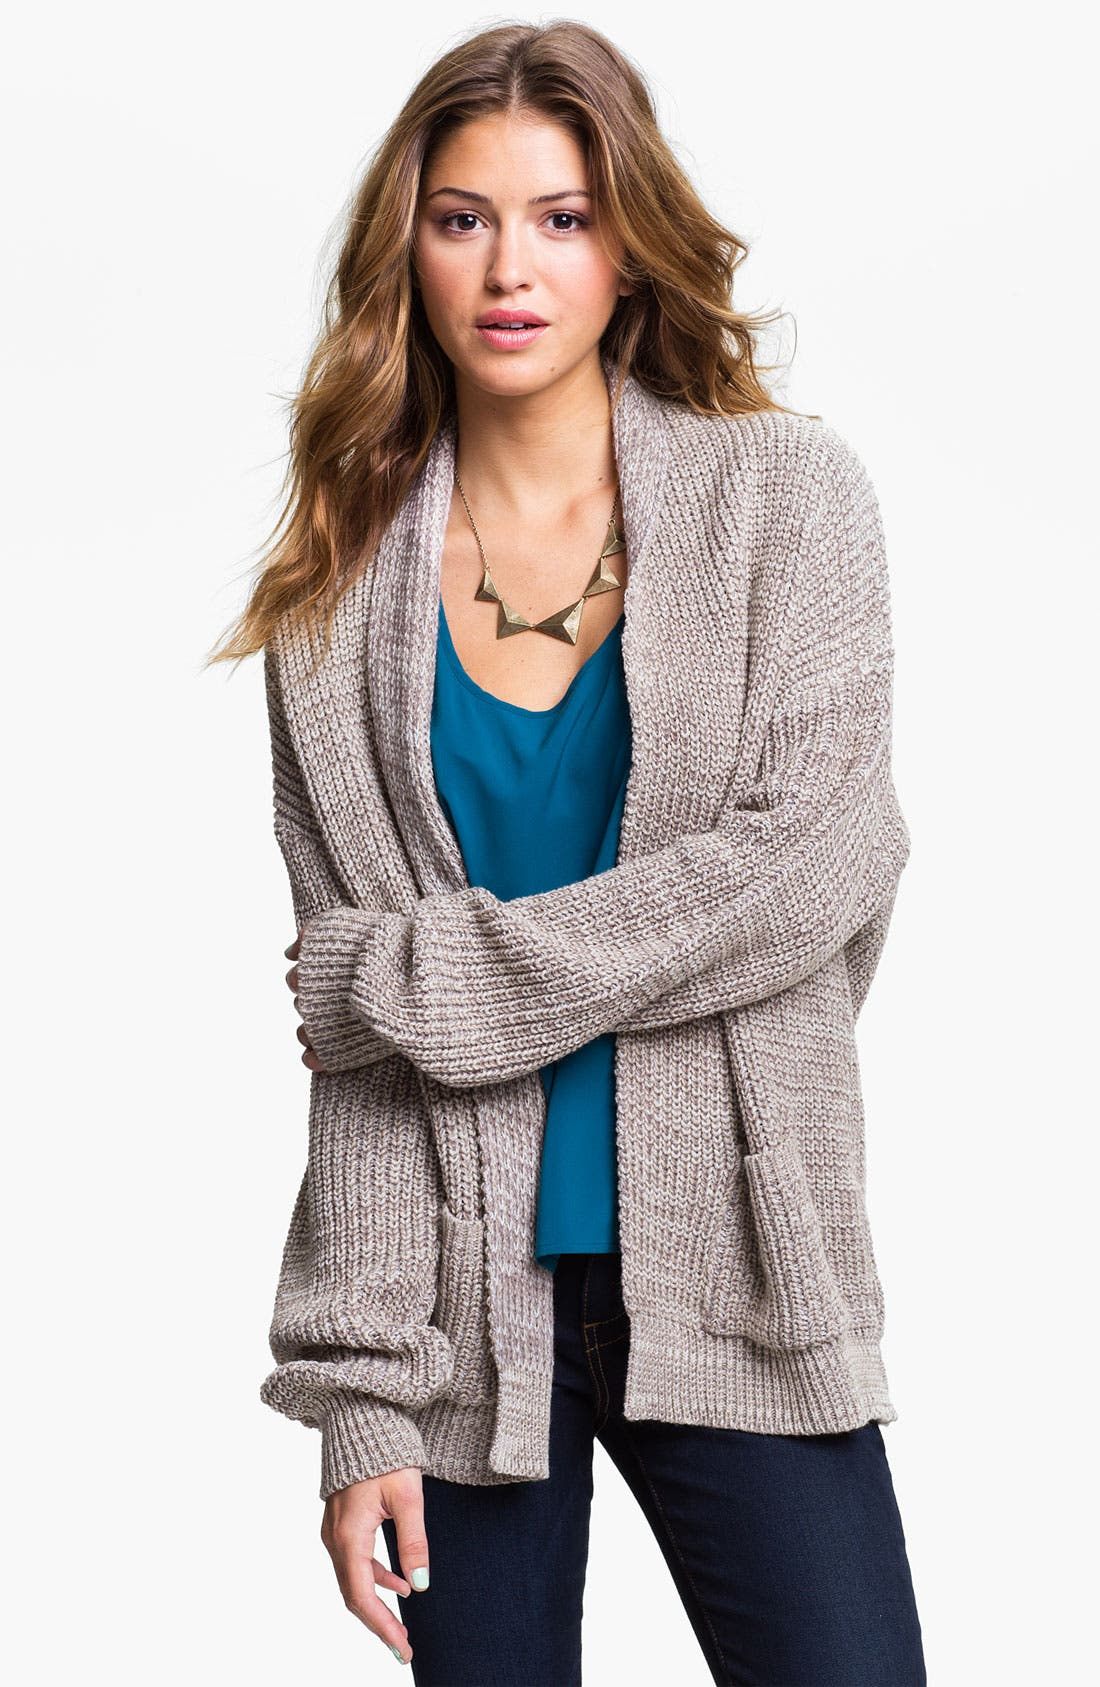 Alternate Image 1 Selected - Cotton Emporium Oversized Cardigan (Juniors)